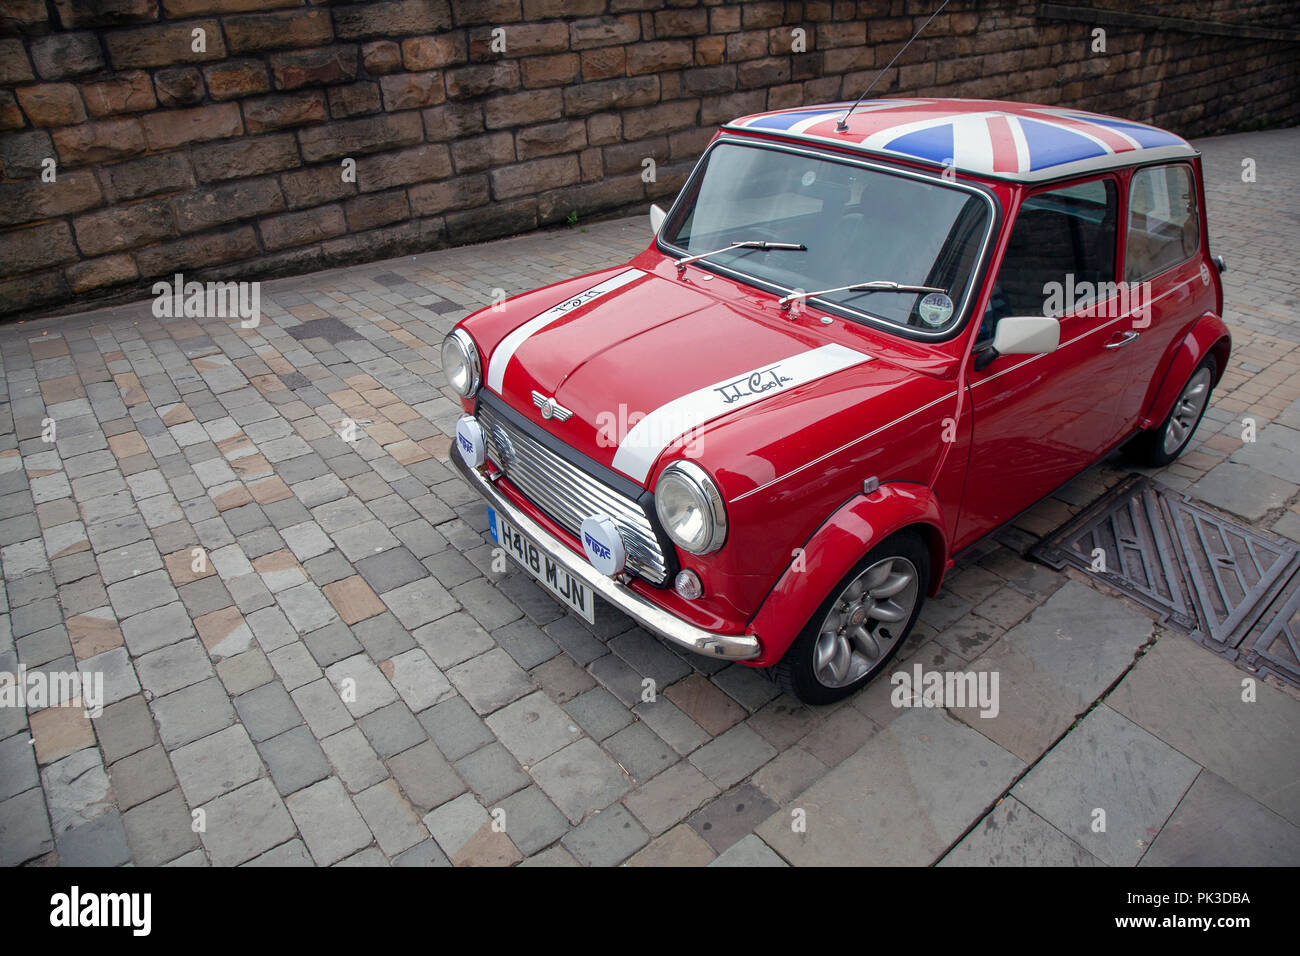 A Red Mini Cooper Wth A Union Jack Roof By John Cooper Version Of